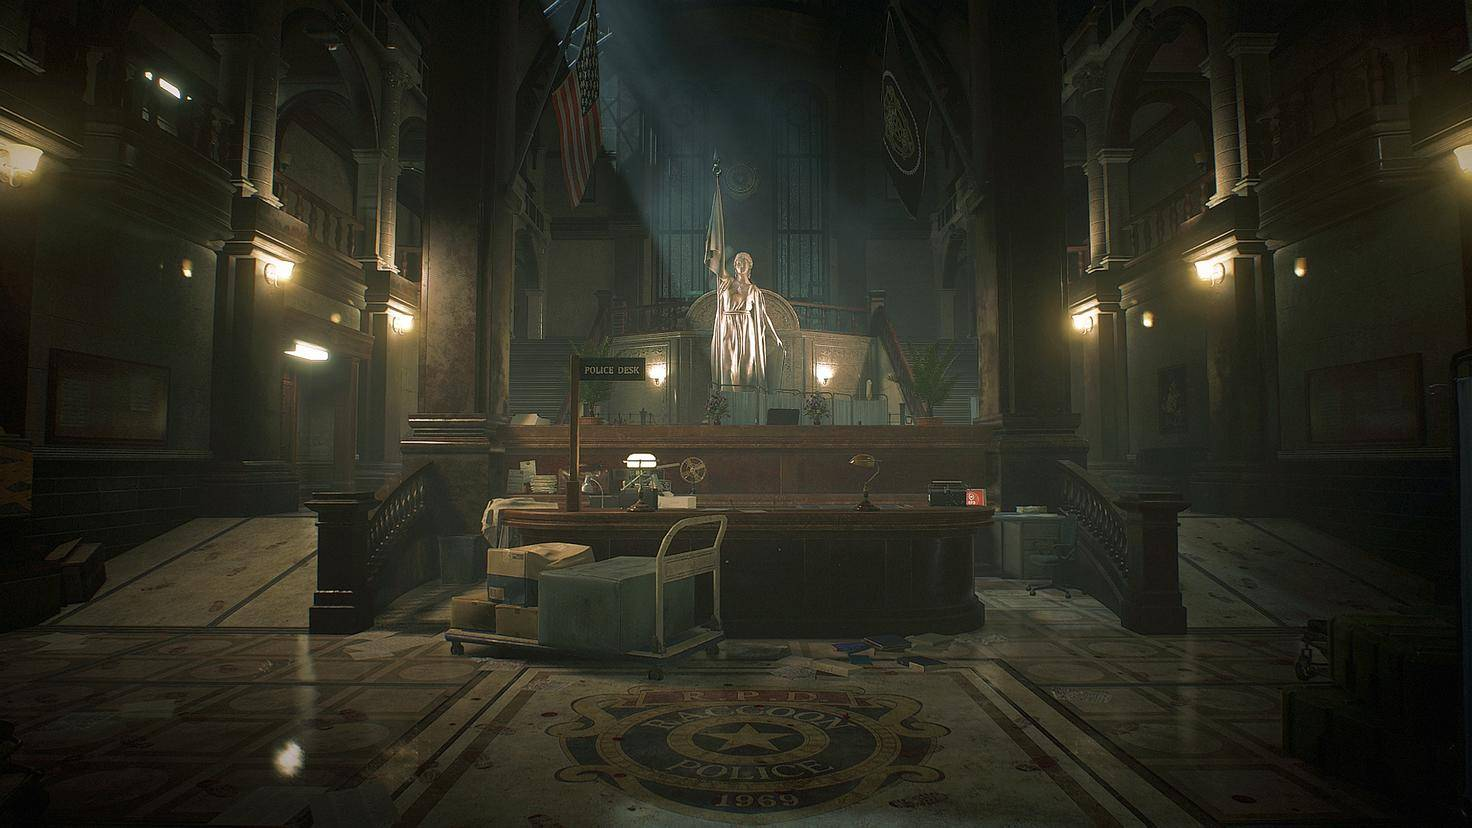 resident-evil-2-remake-screenshot-front-hall